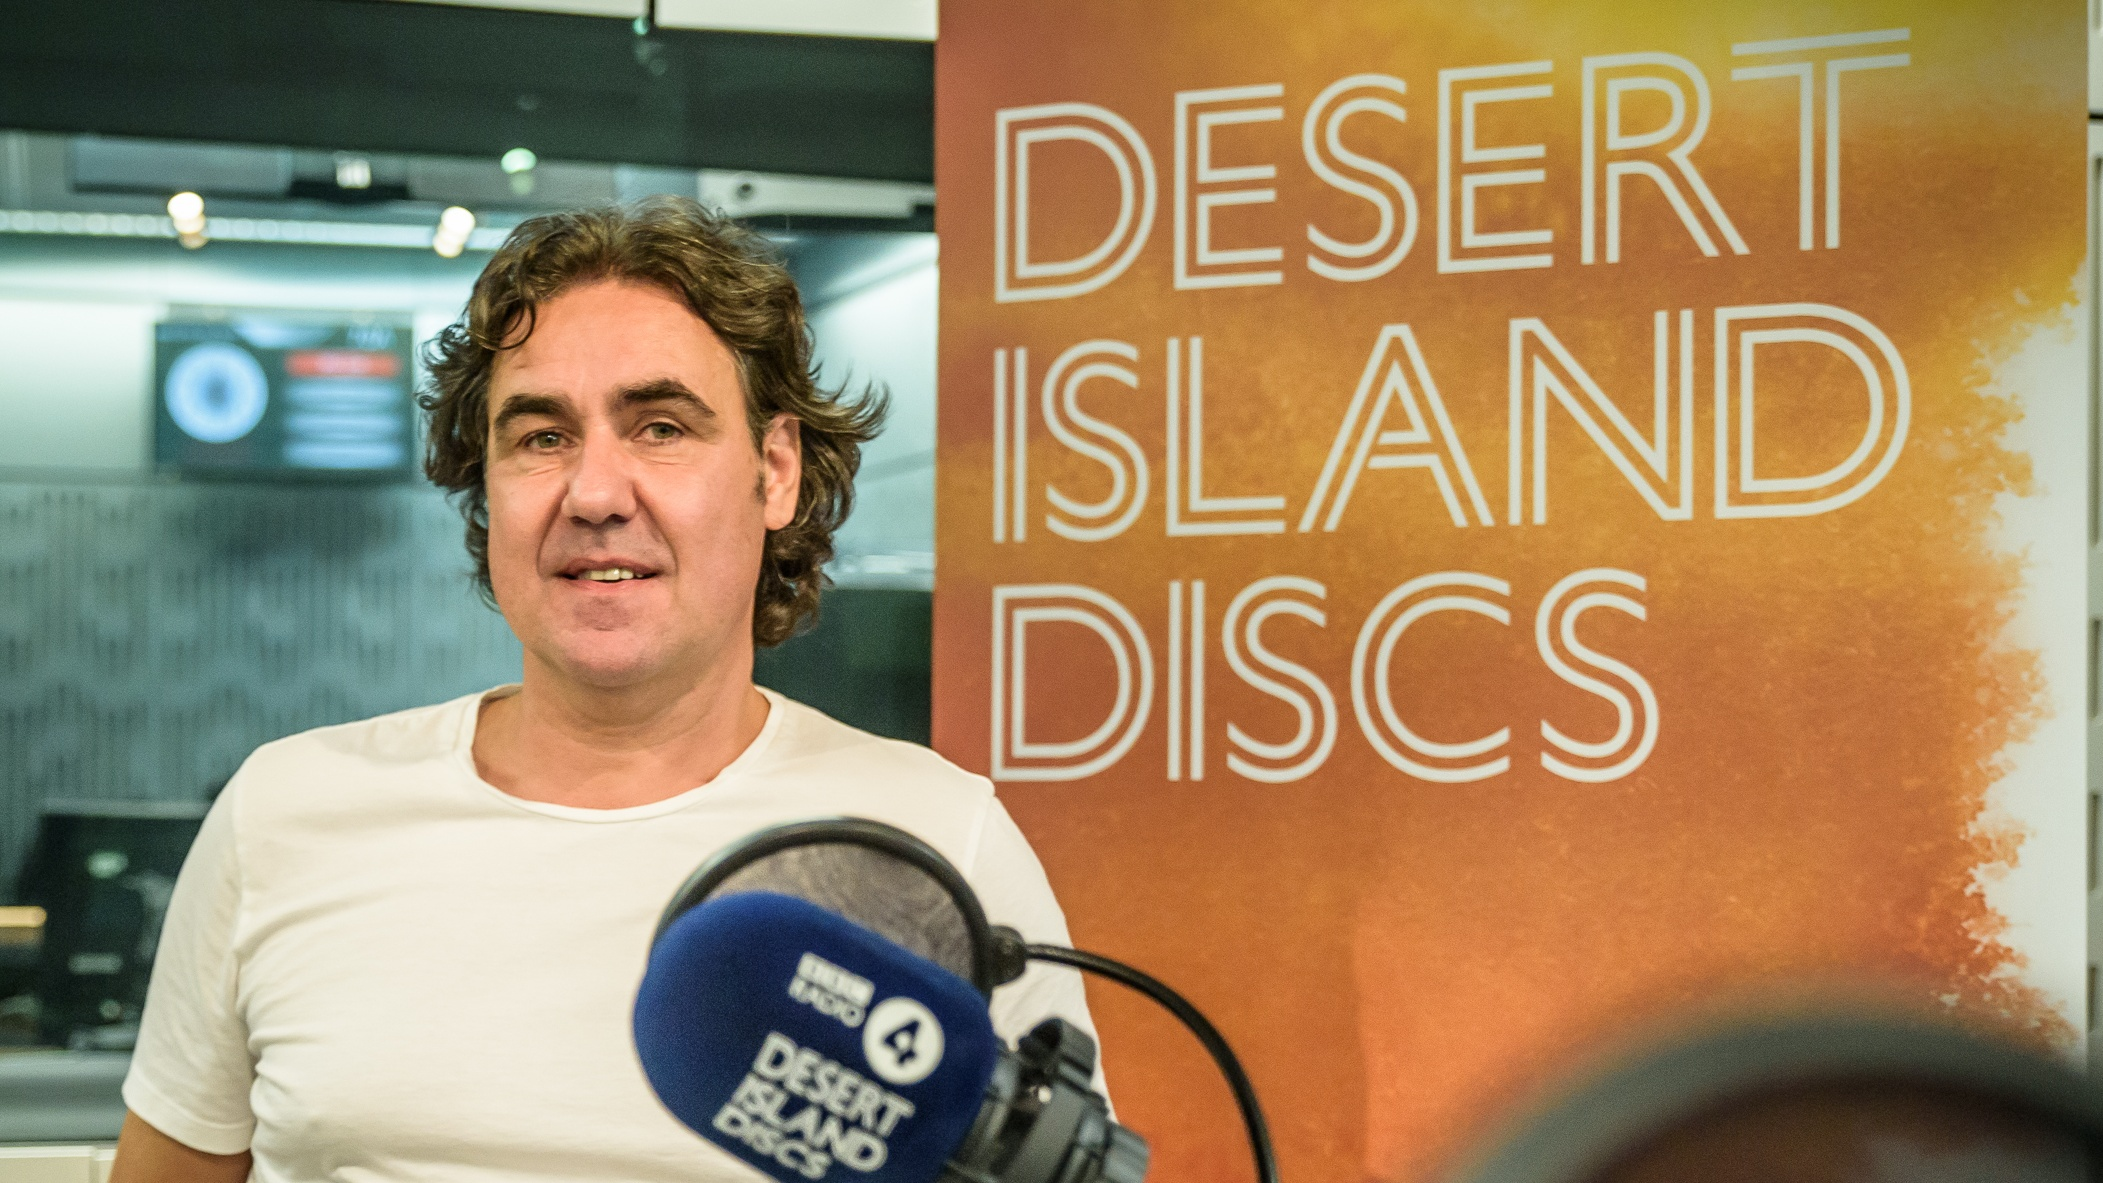 Comedian Micky Flanagan appearing on Desert Island Discs